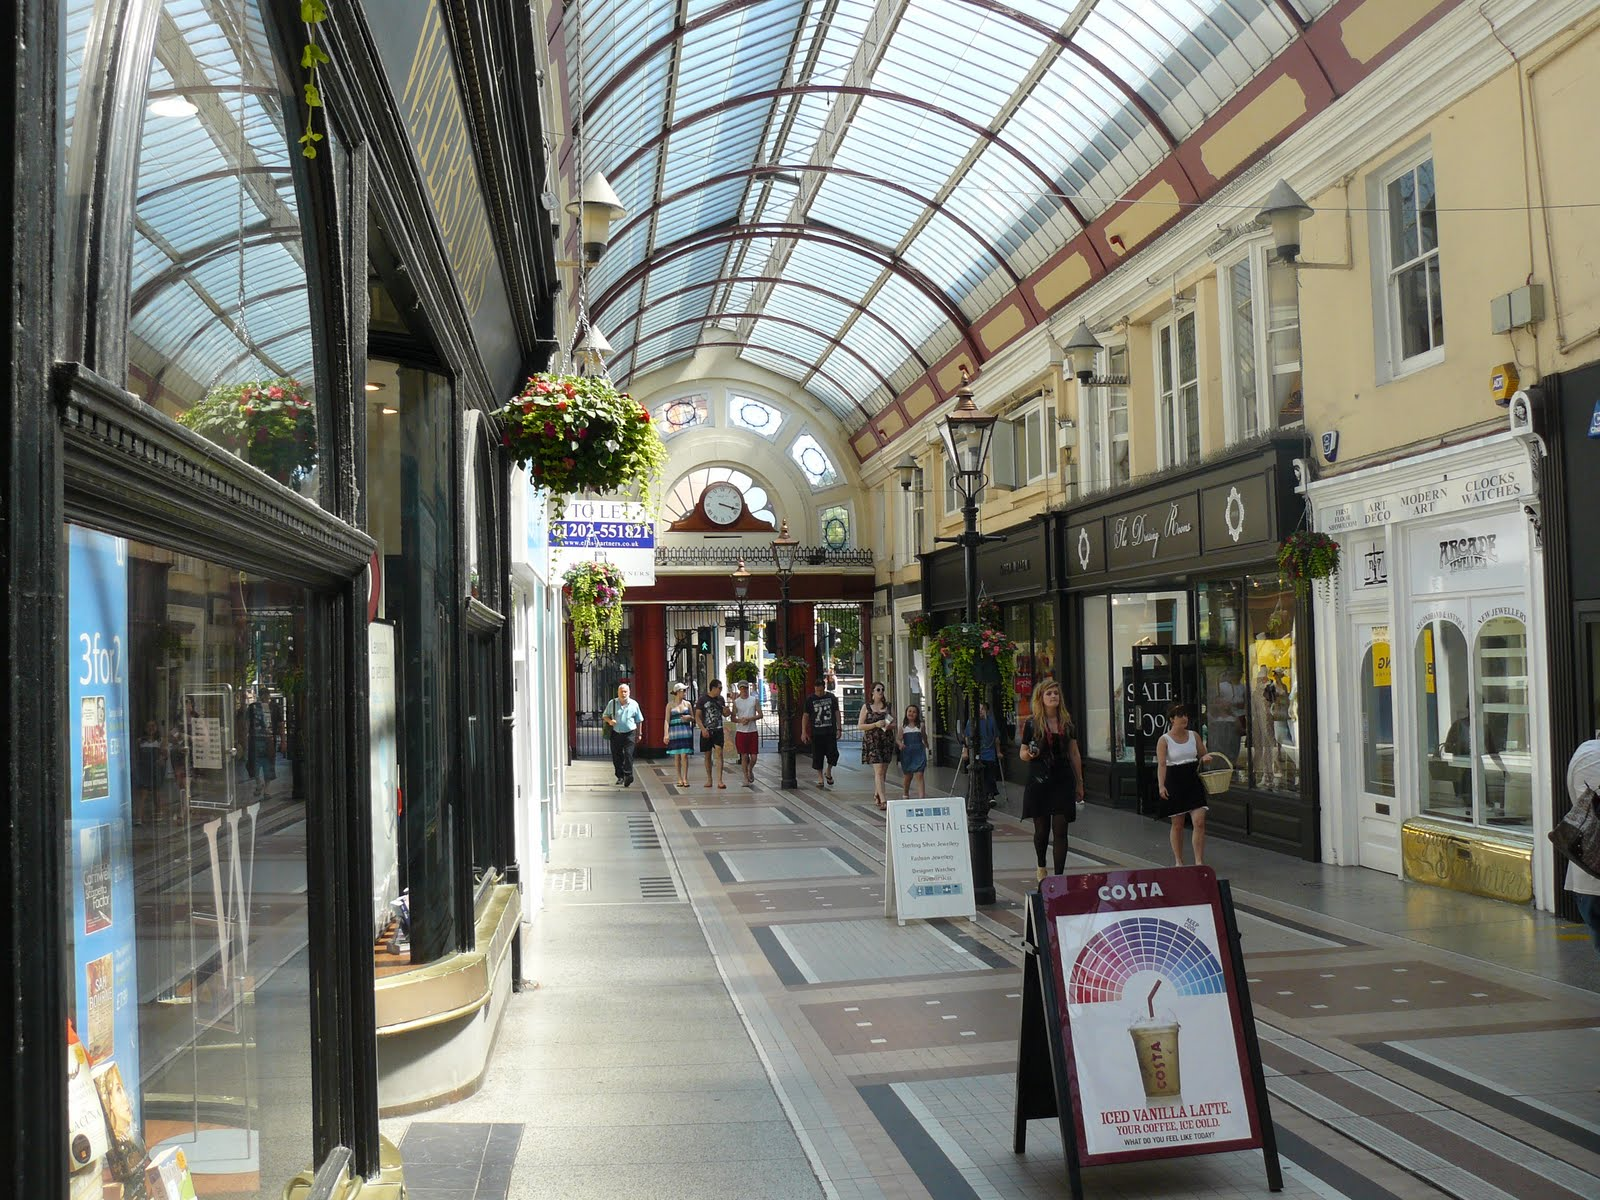 Henleys Property refurbishment Win Bournemouth Arcade